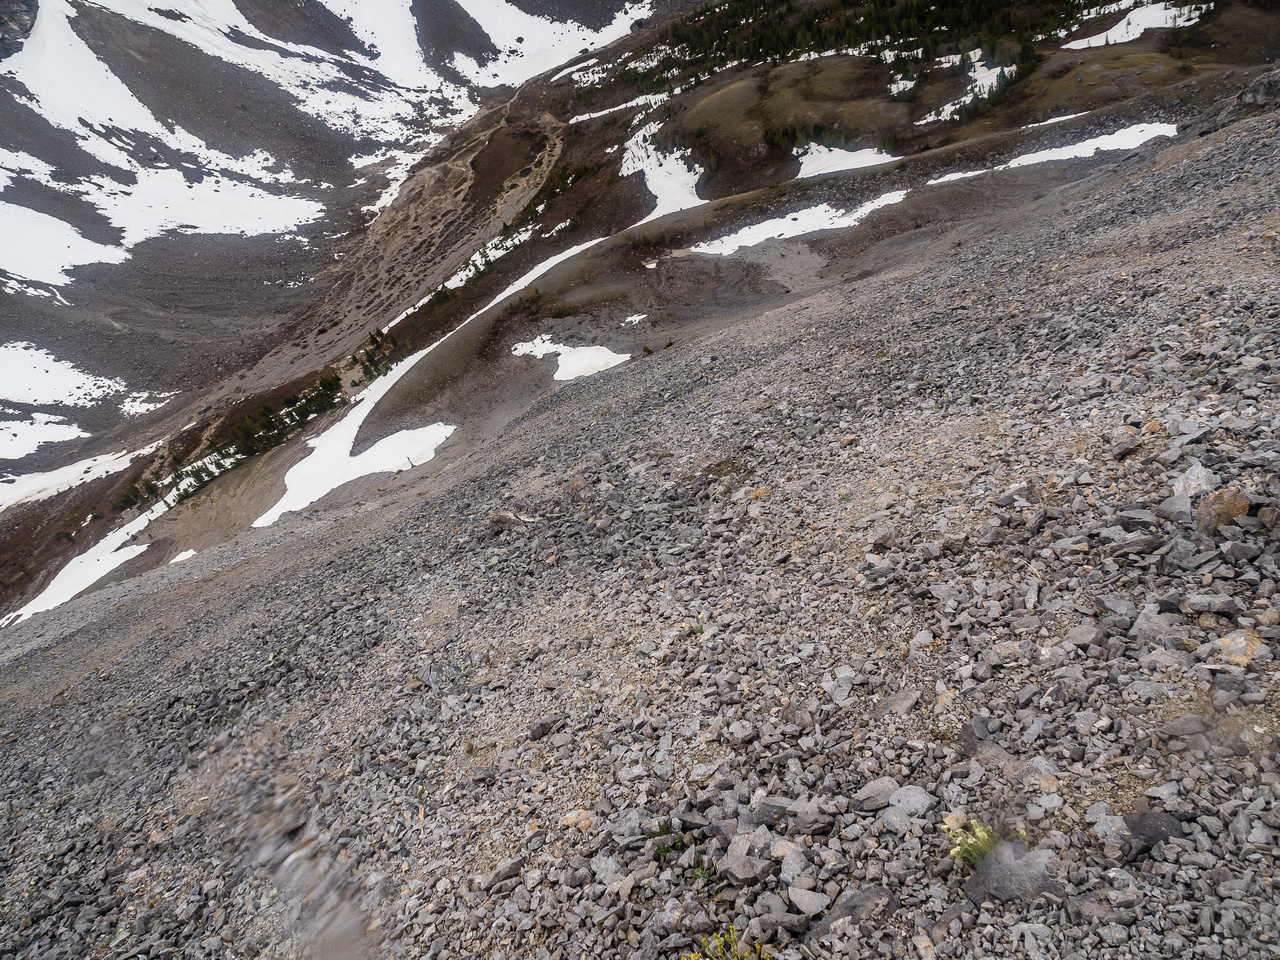 A fast scree run in the rain!